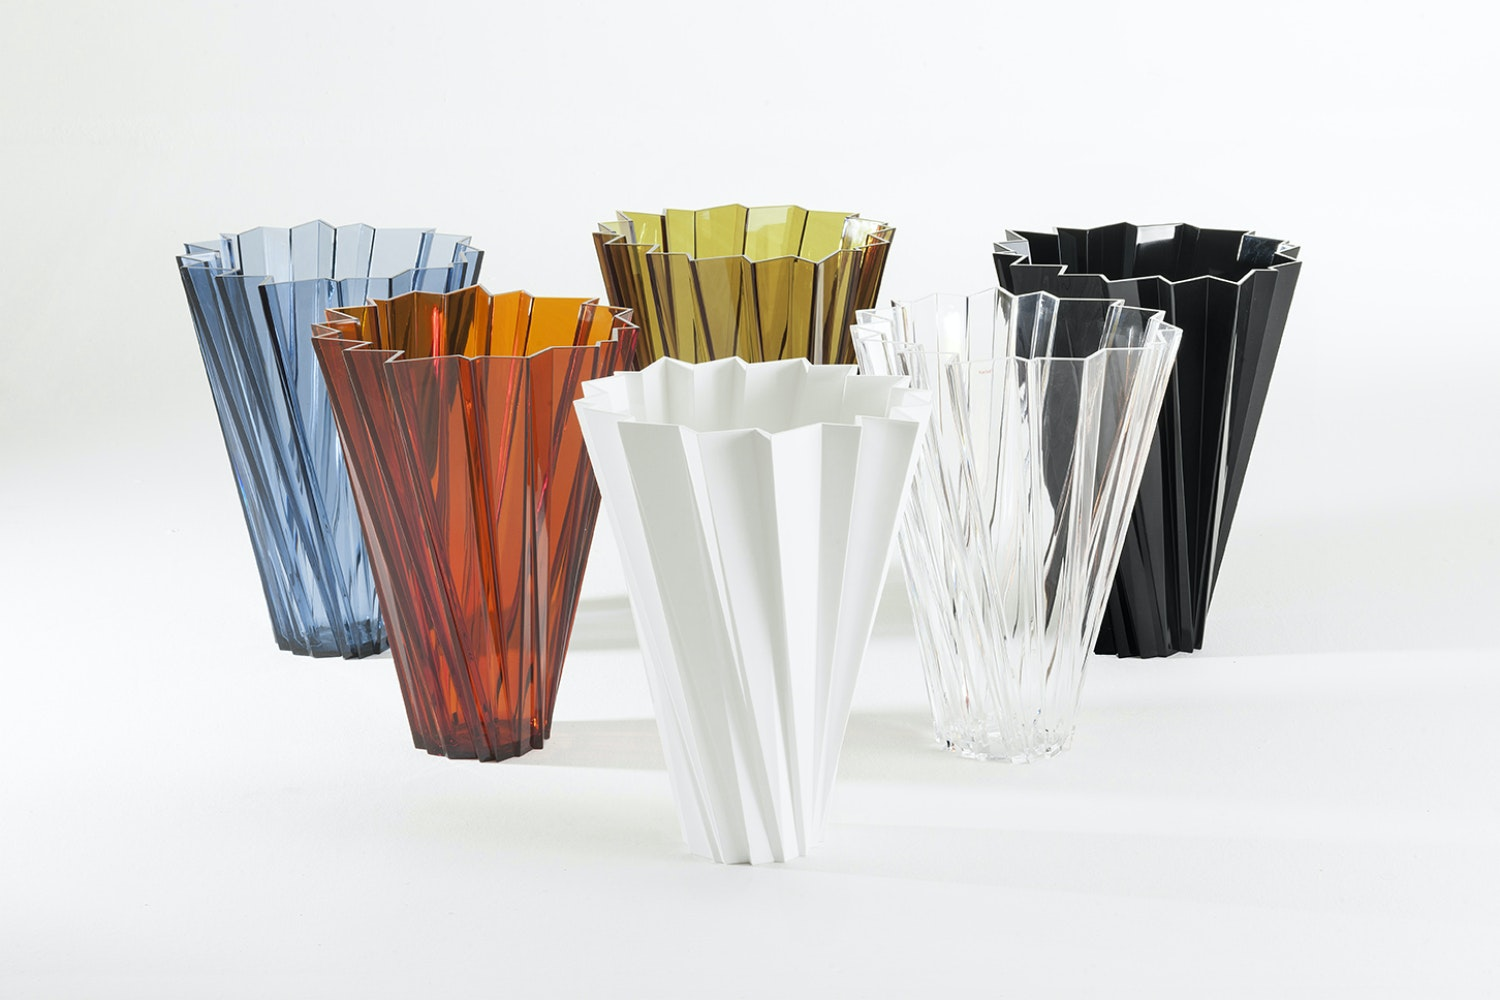 Shanghai Vase by Mario Bellini for Kartell